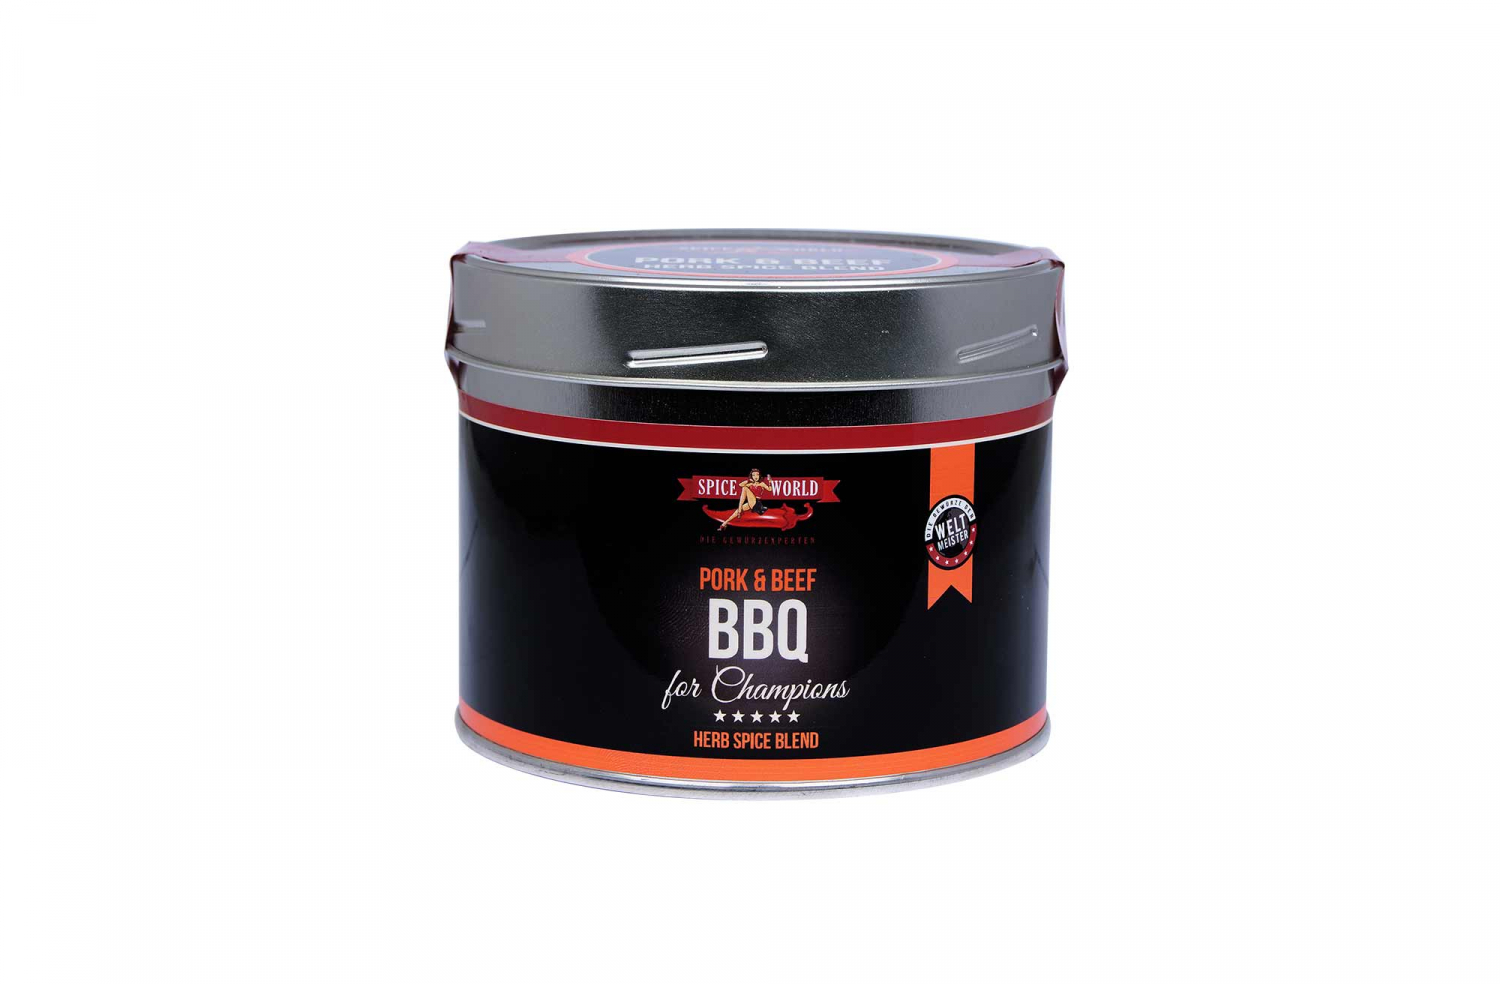 Barbecue-for-Champions Pork & Beef - Herb Spice Blend, 550ml Gastro-Dose 550ml Gastro-Dose